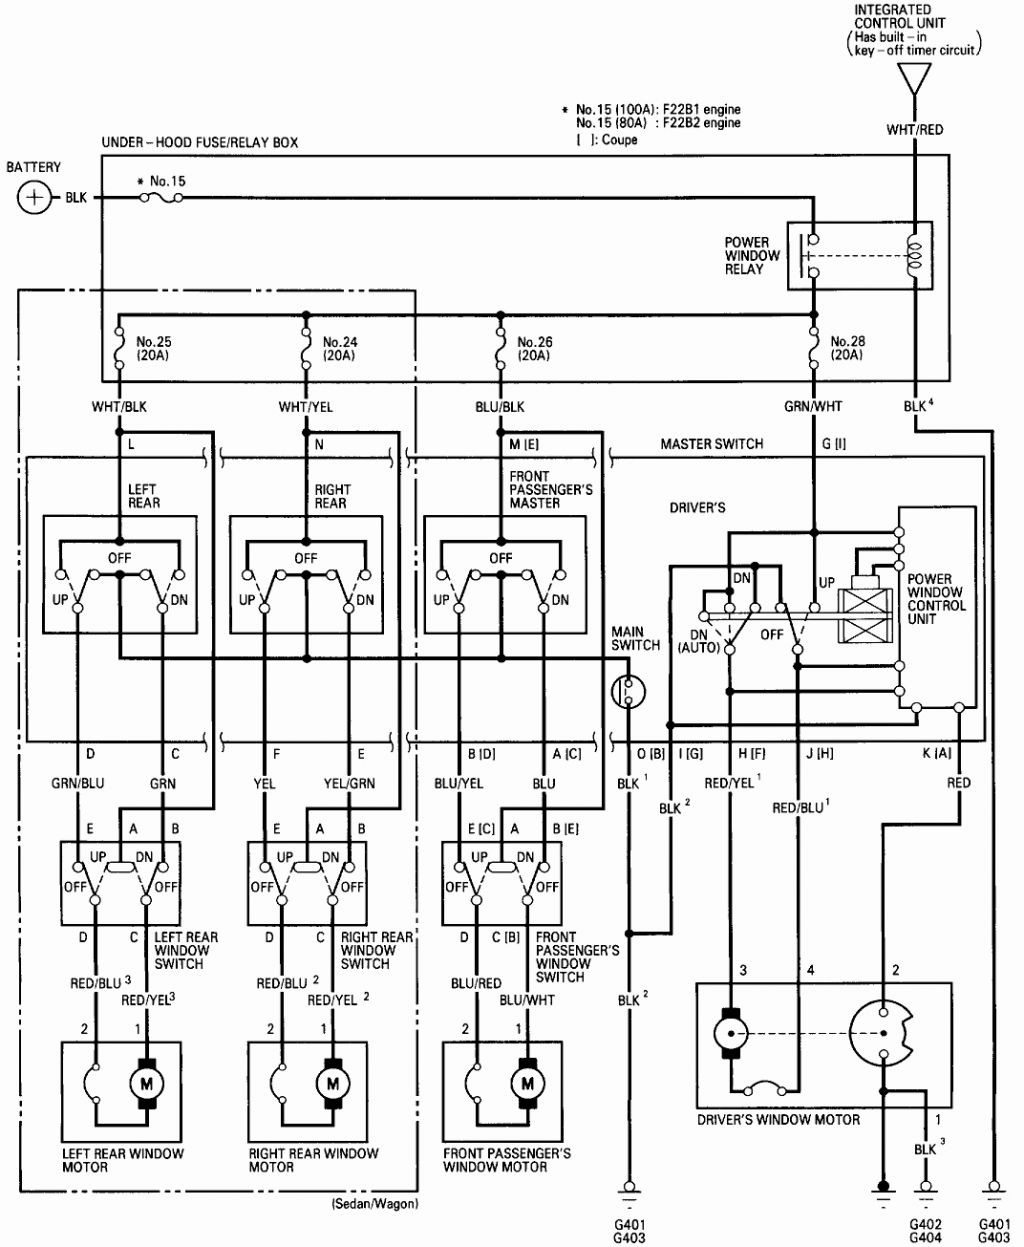 1999 Saturn Sl2 Wiring Diagram Also 2001 Saturn Radio Wiring Diagram